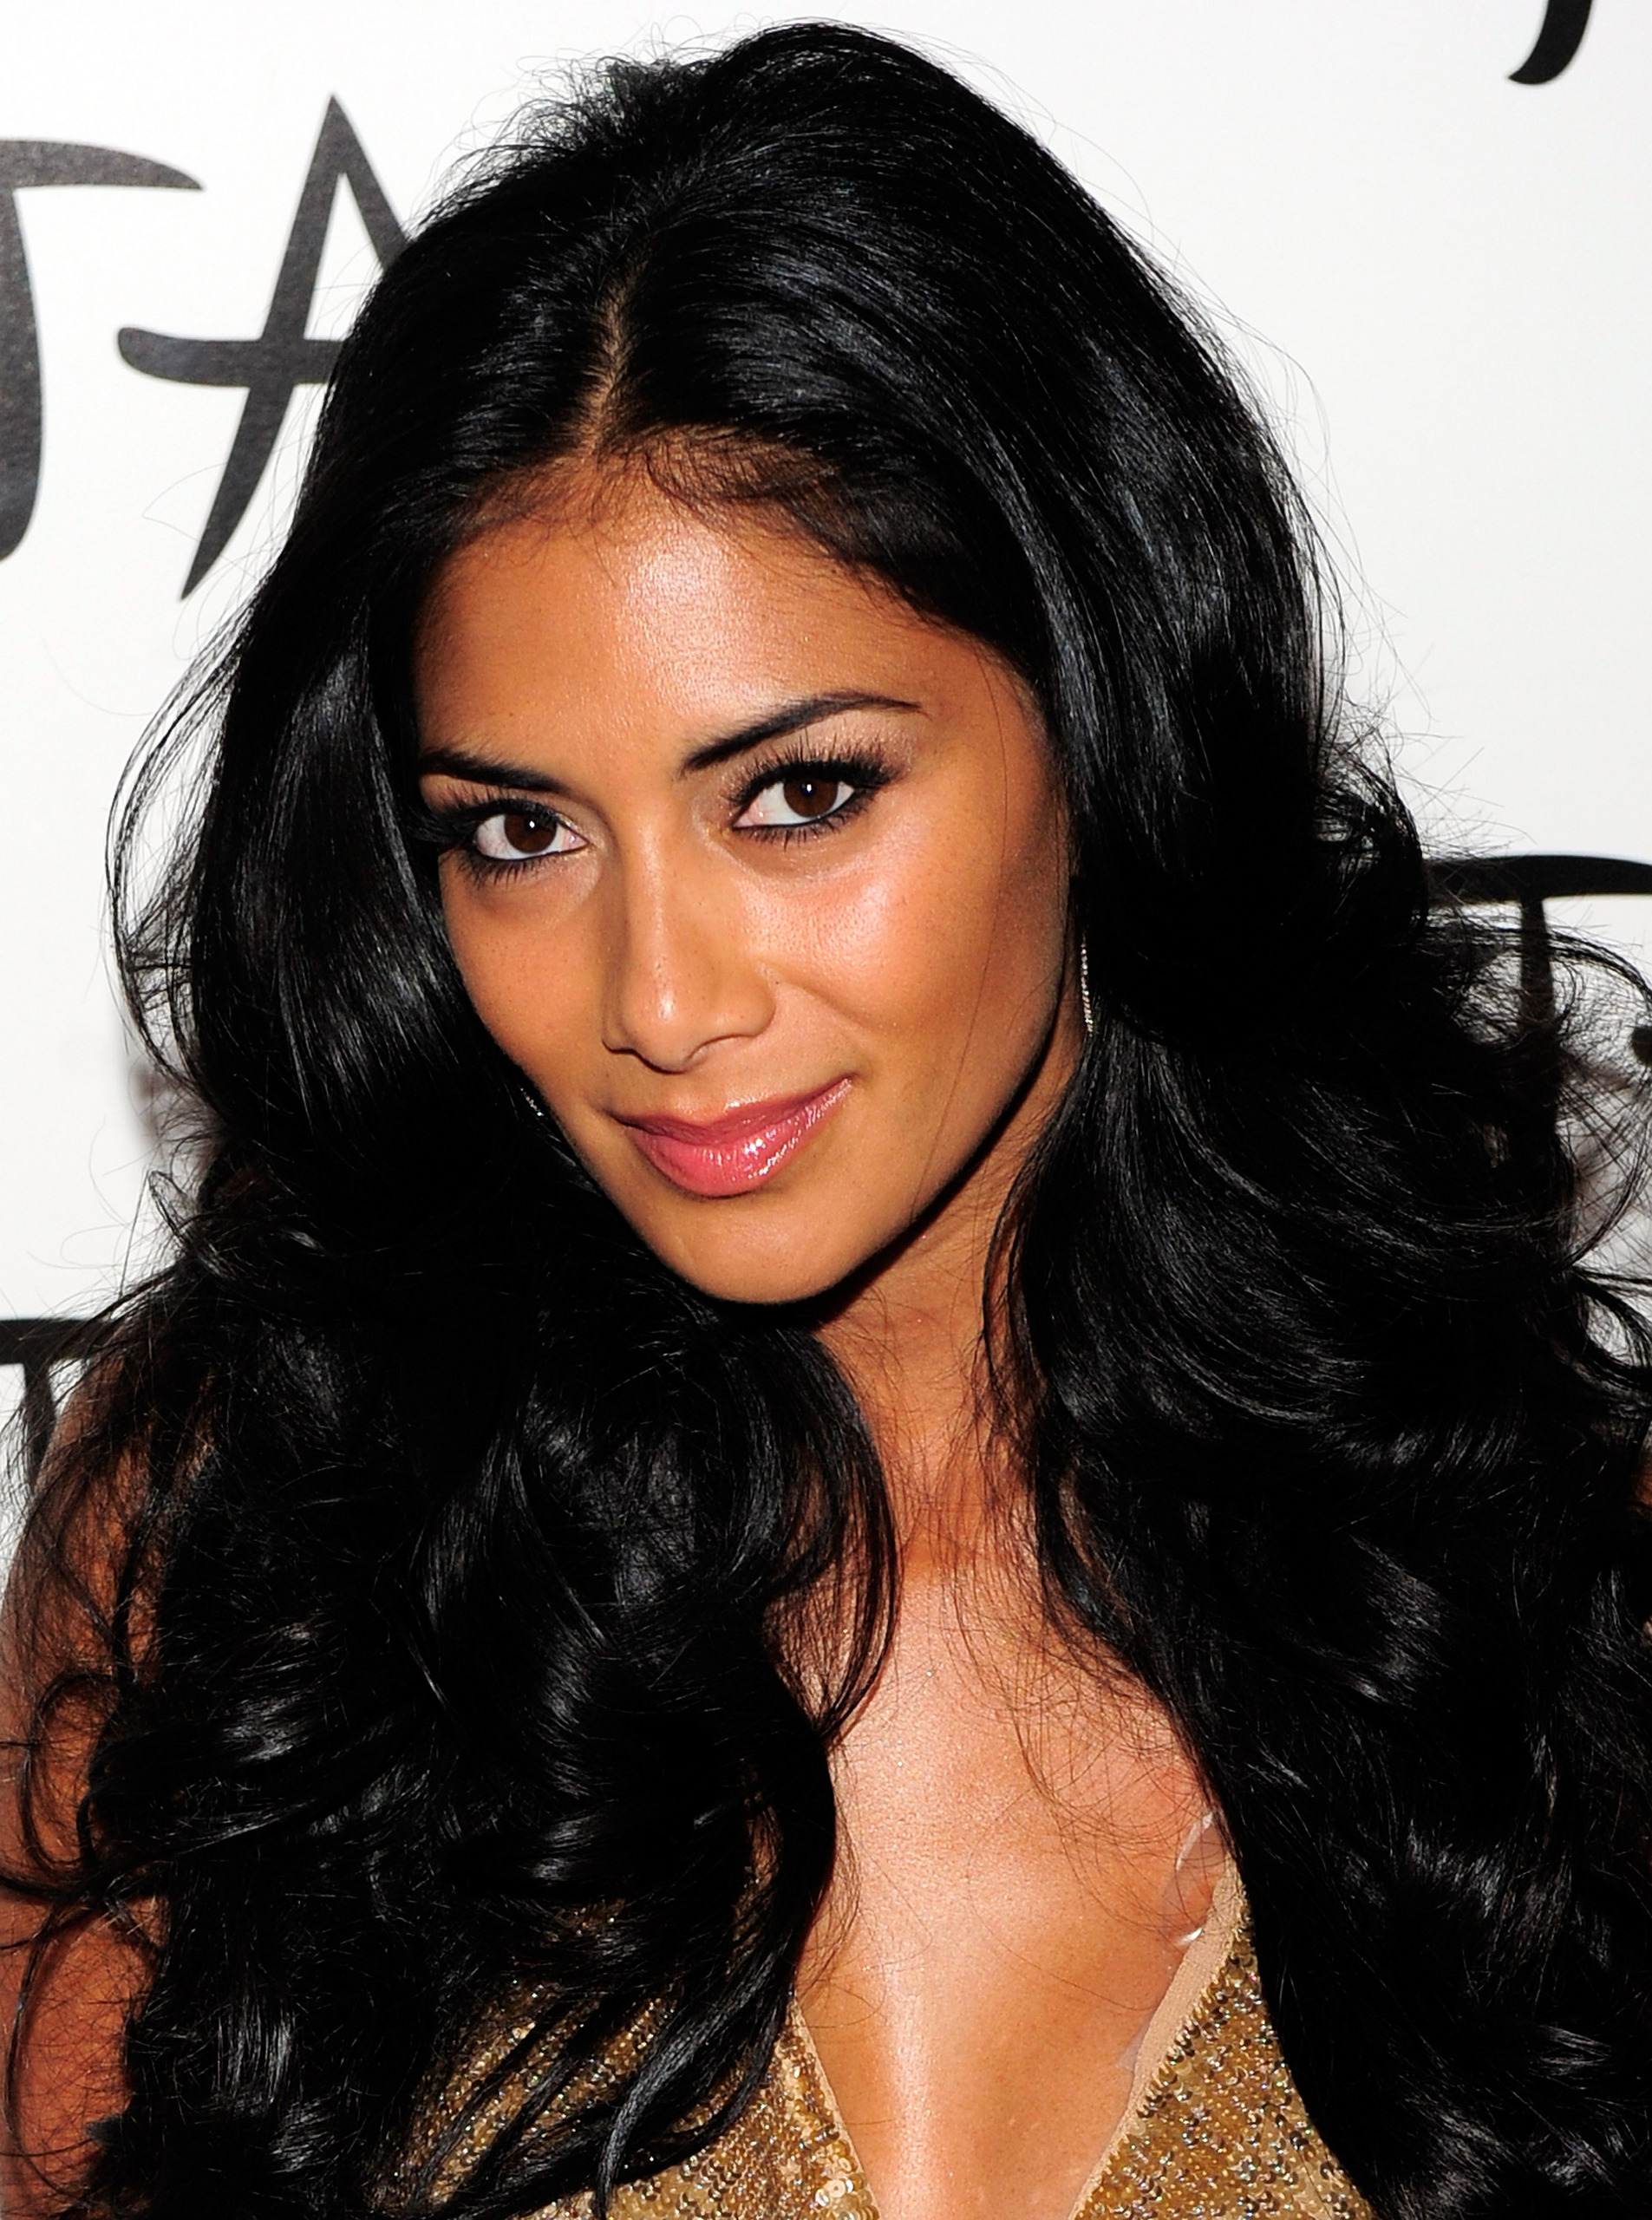 http://leadingladymakeup.files.wordpress.com/2013/04/nicole-scherzinger.jpg